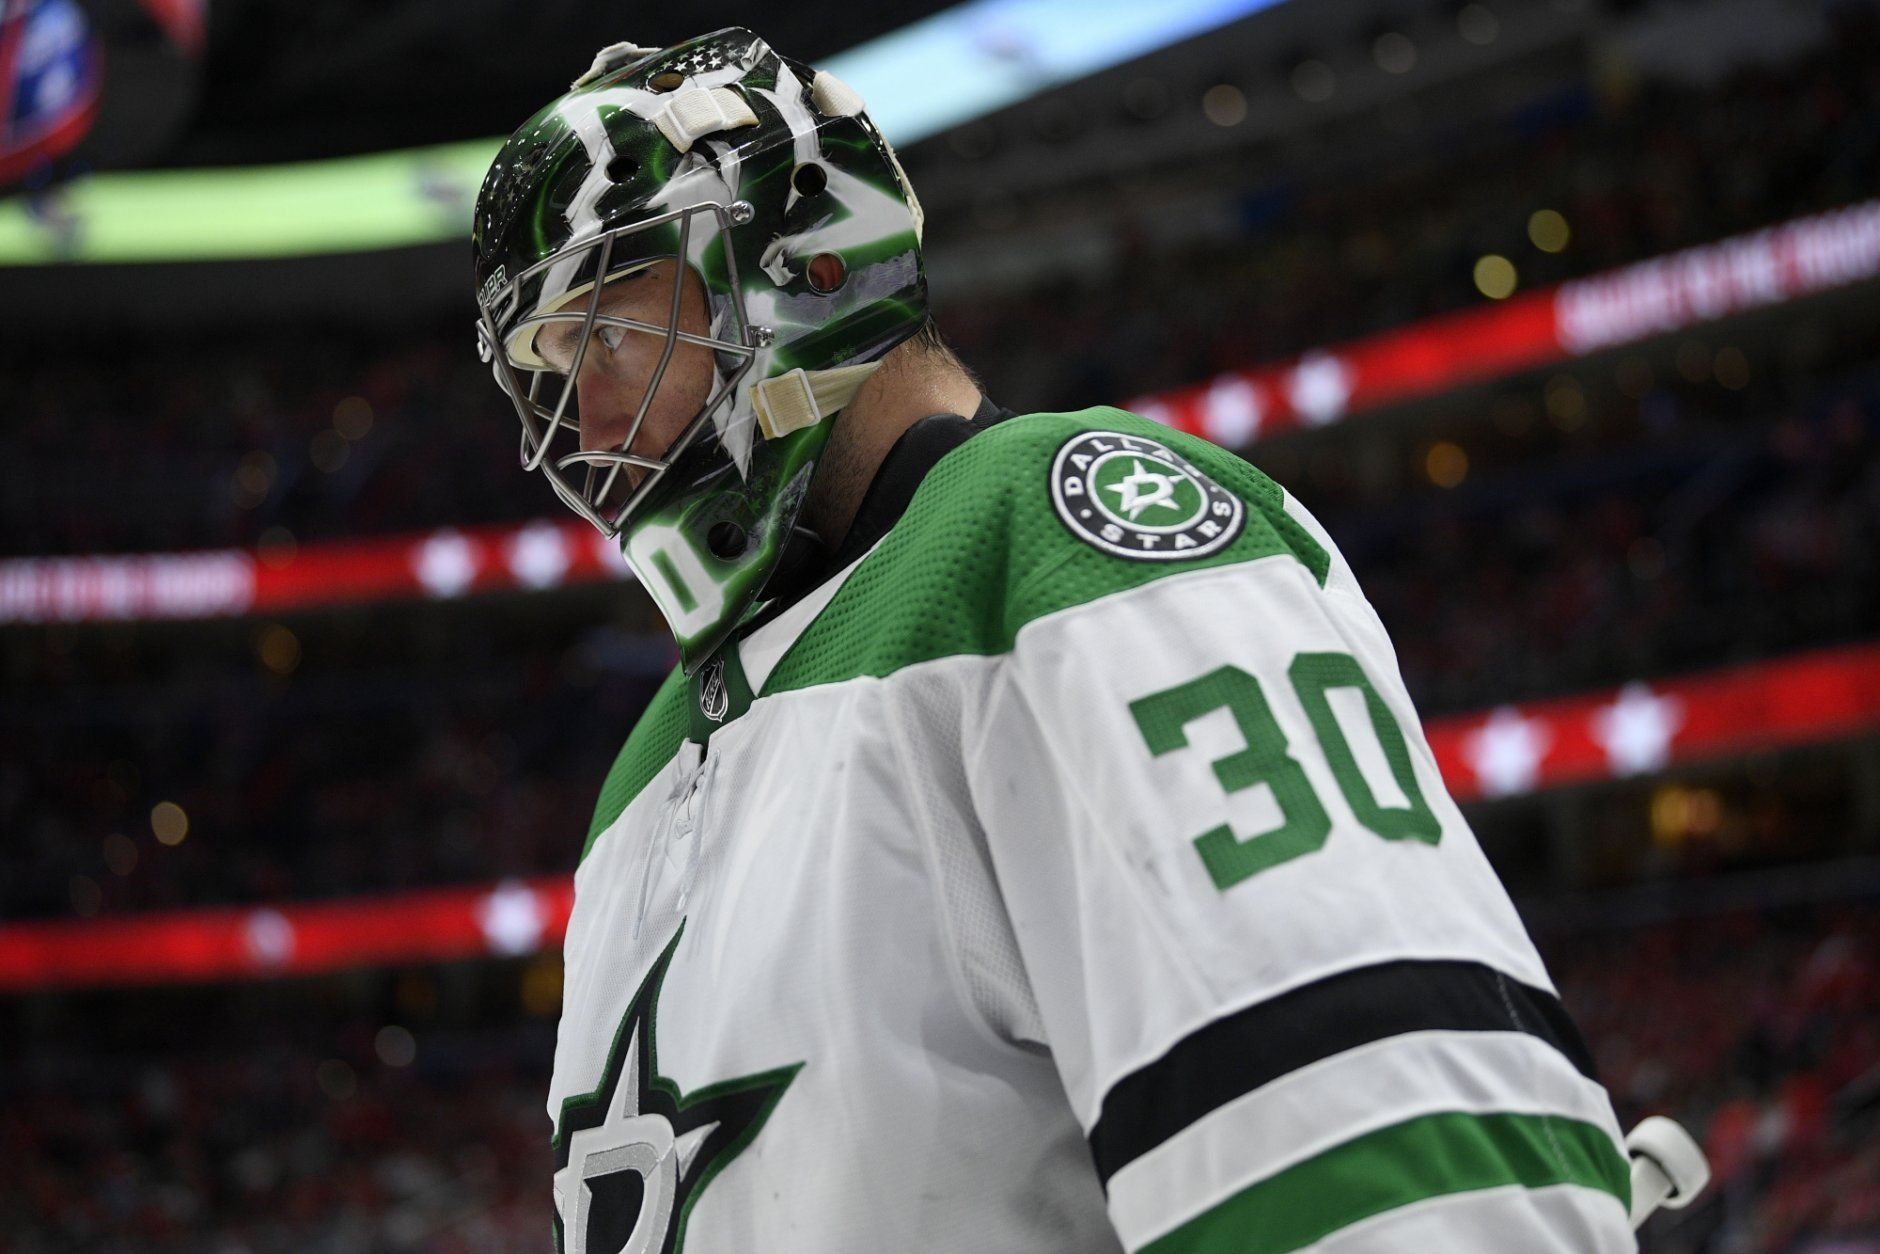 Dallas Stars goaltender Ben Bishop stands on the ice during a break in the action in the third period of the team's NHL hockey game against the Washington Capitals, Tuesday, Oct. 8, 2019, in Washington. The Stars won 4-3 in overtime. (AP Photo/Nick Wass)